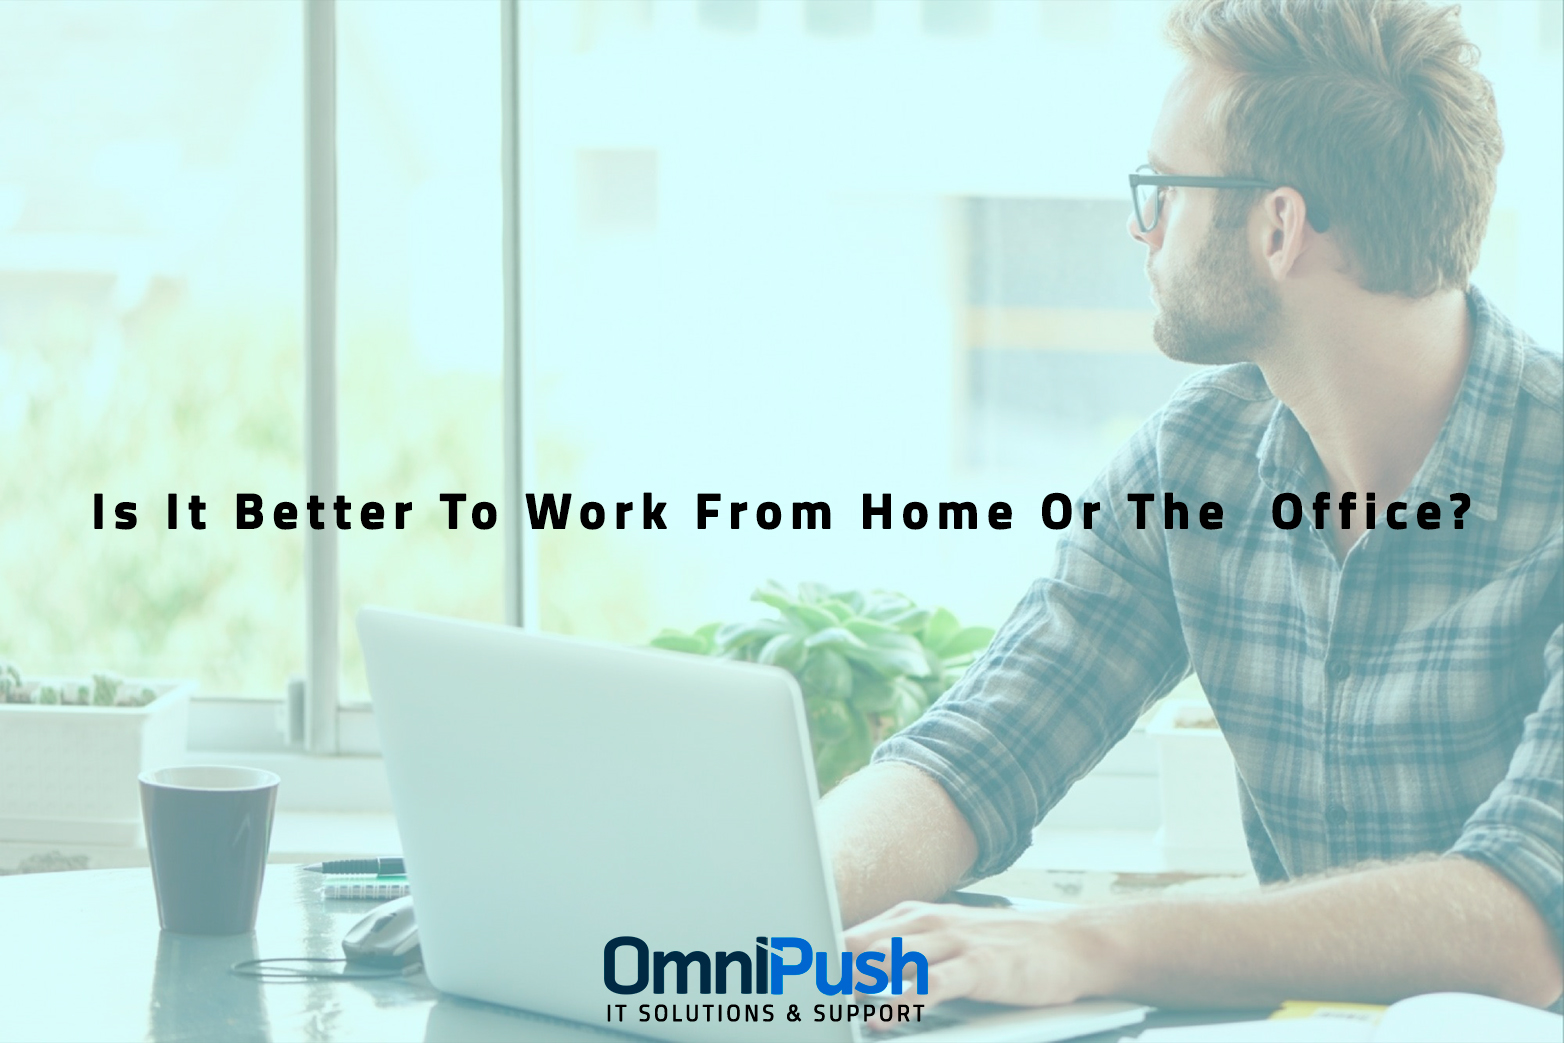 Work From Home Or Office